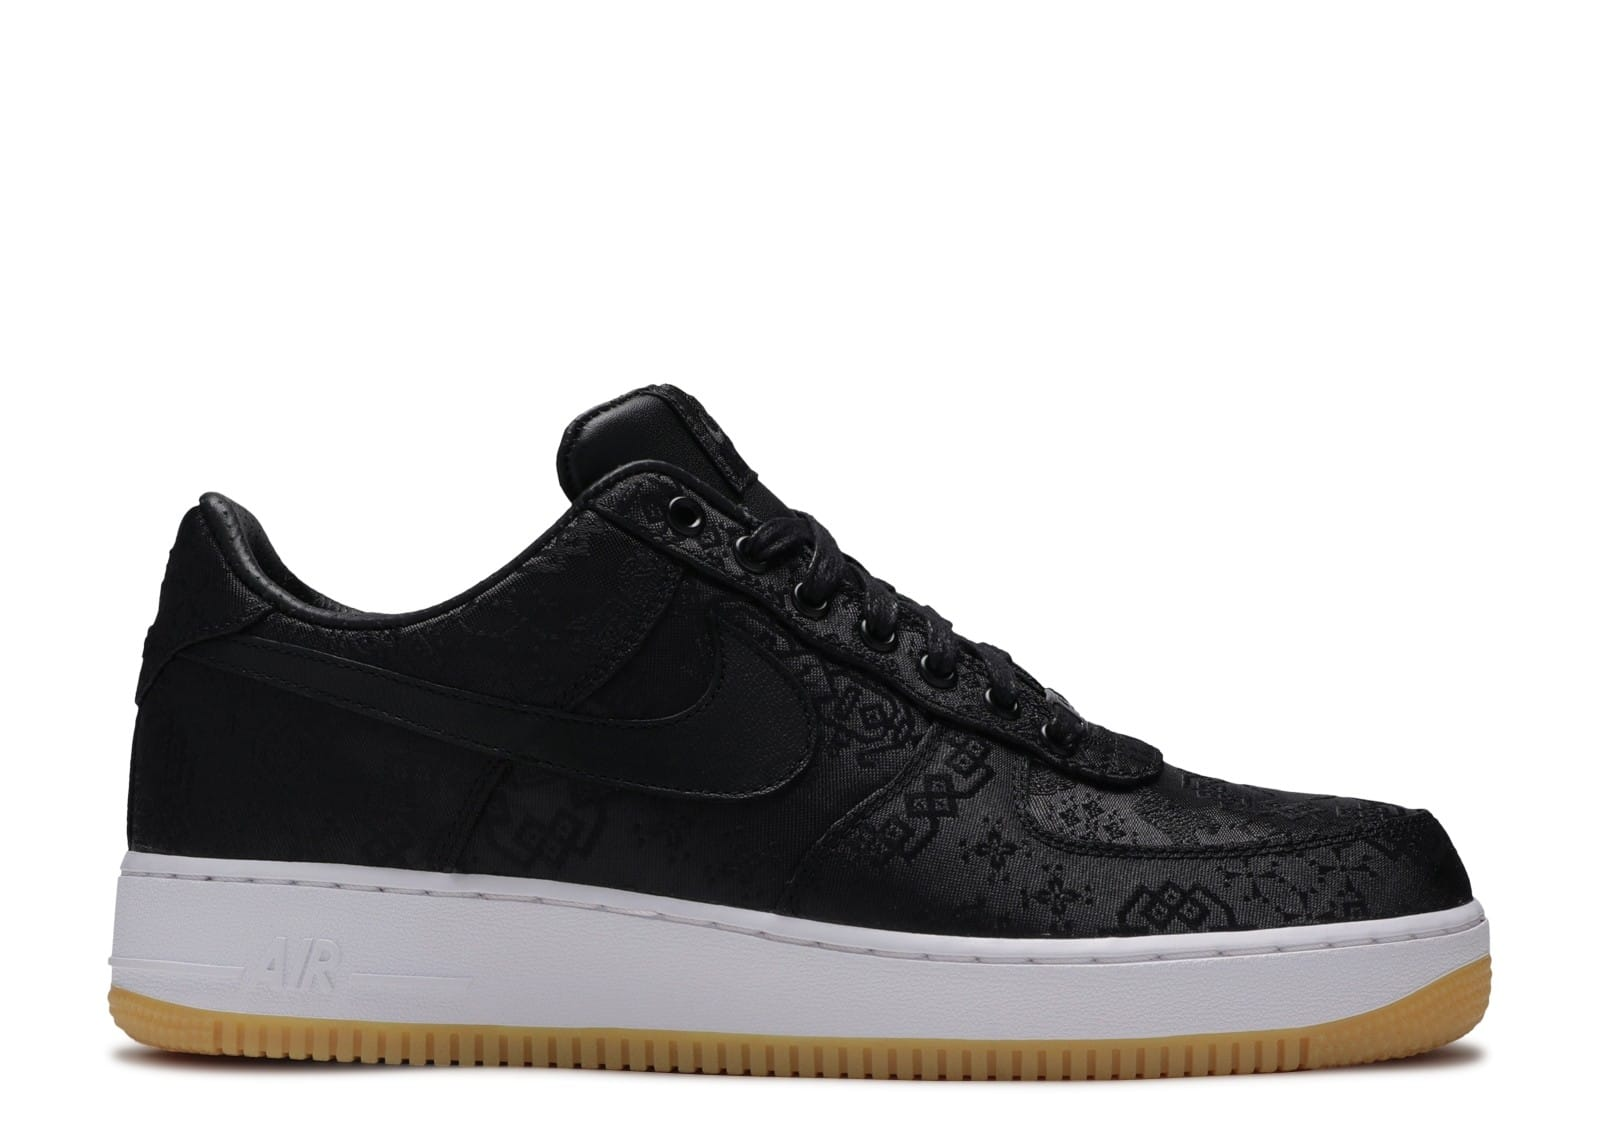 Nike Air Force 1 Low Valentine's Day 2018 For Sale